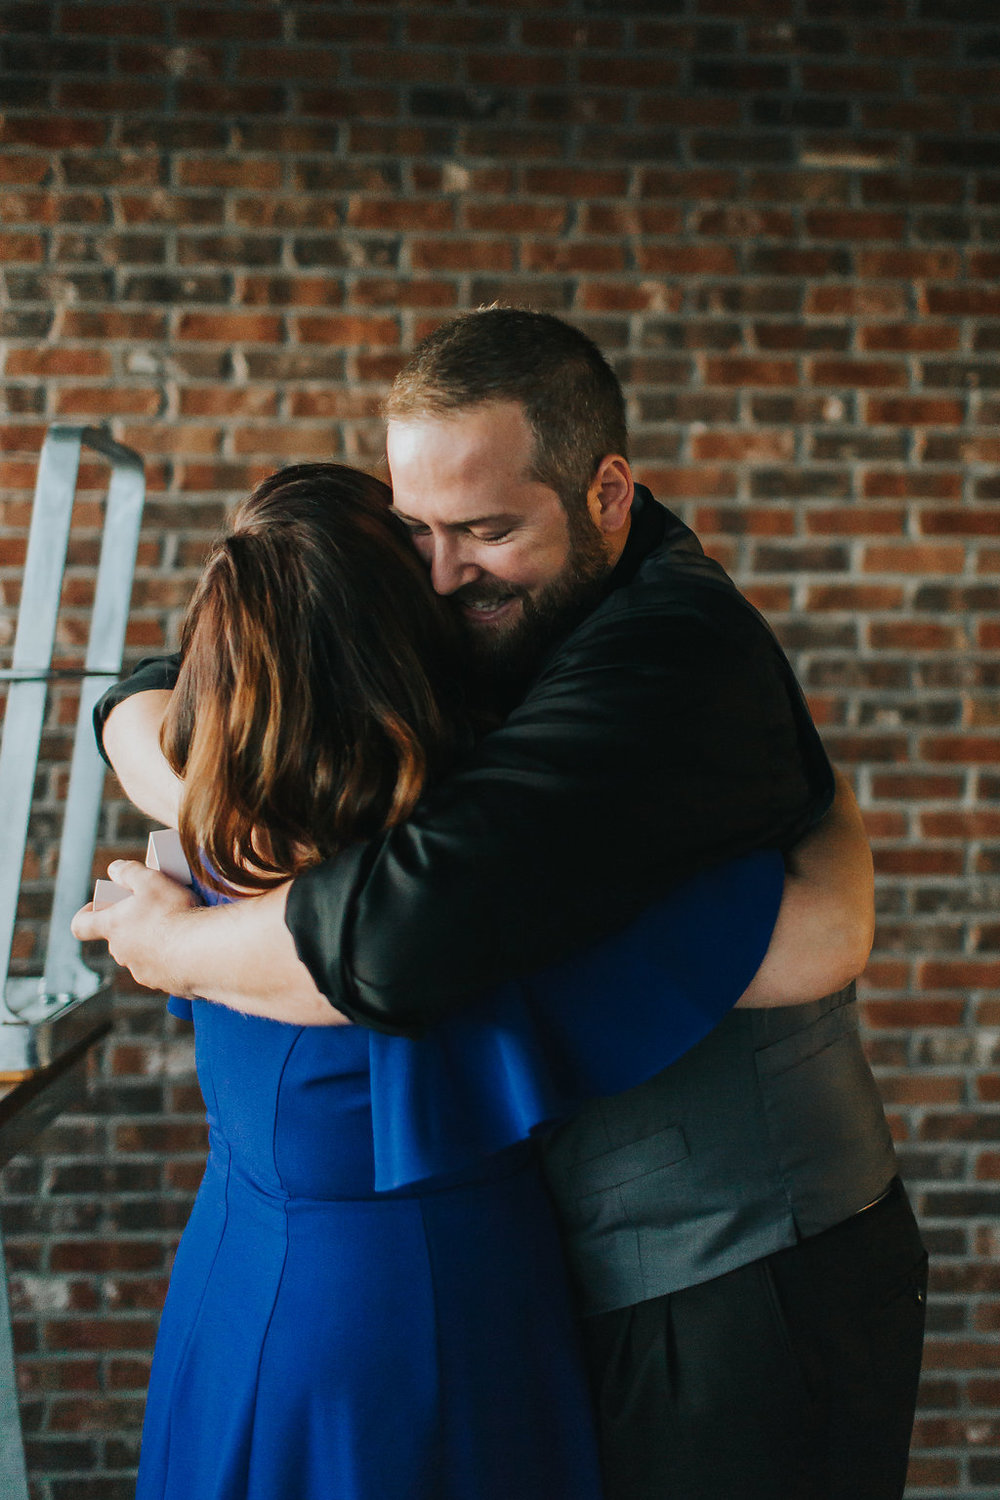 Tampa Elopement Coppertail Brewery Ybor Wedding Photographer_011.jpg